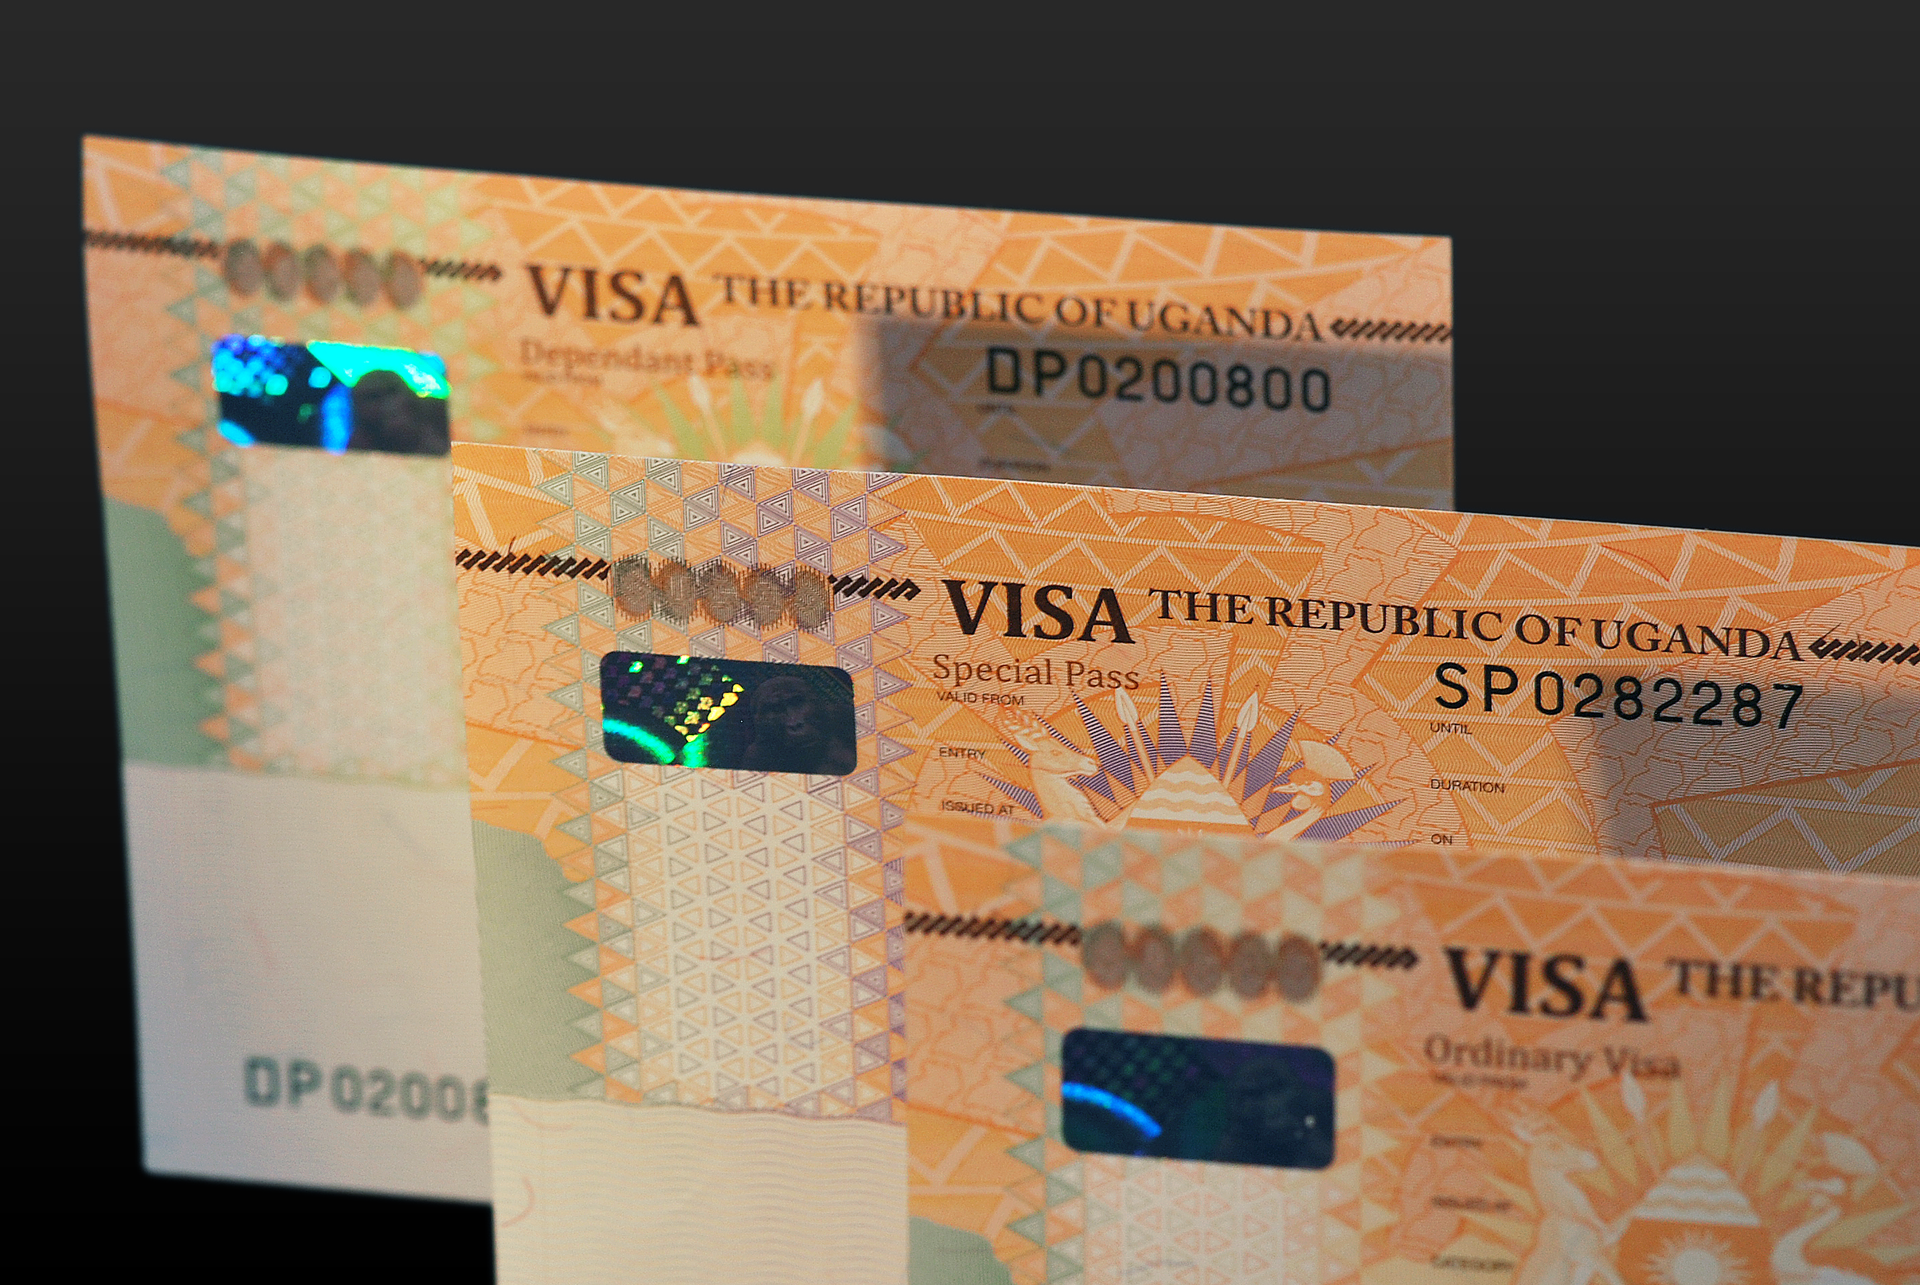 High Security ICAO compliant Visa Labels with Machine Readable information